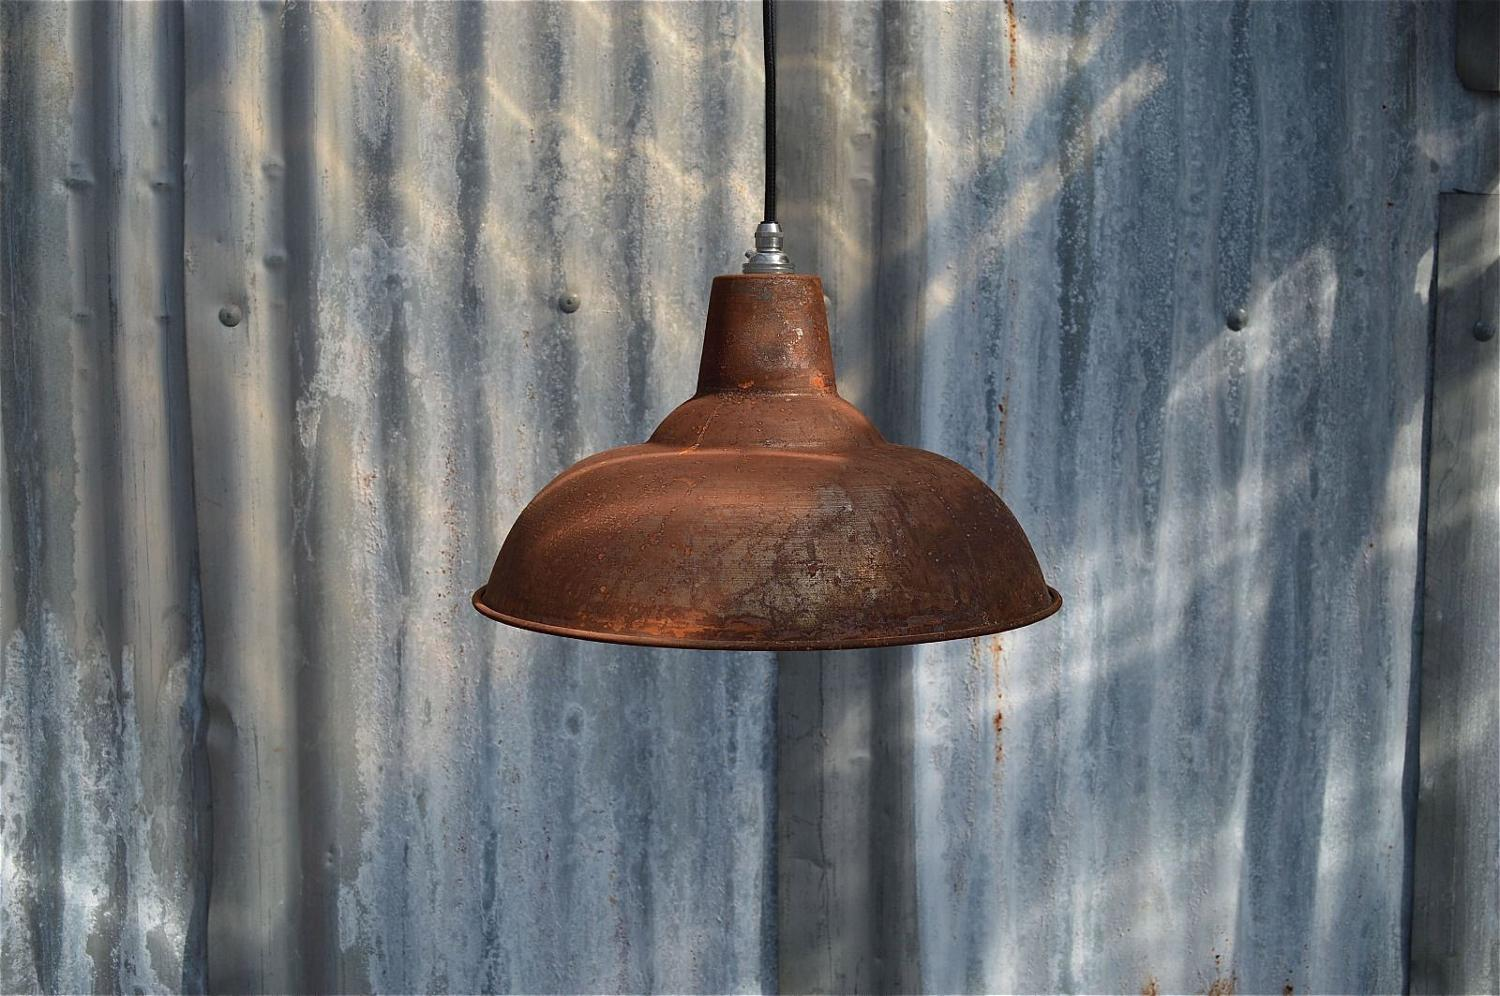 LARGE RUSTY STEEL VINTAGE STYLE BARN LAMP WORKSHOP CEILING LIGHT SHADE